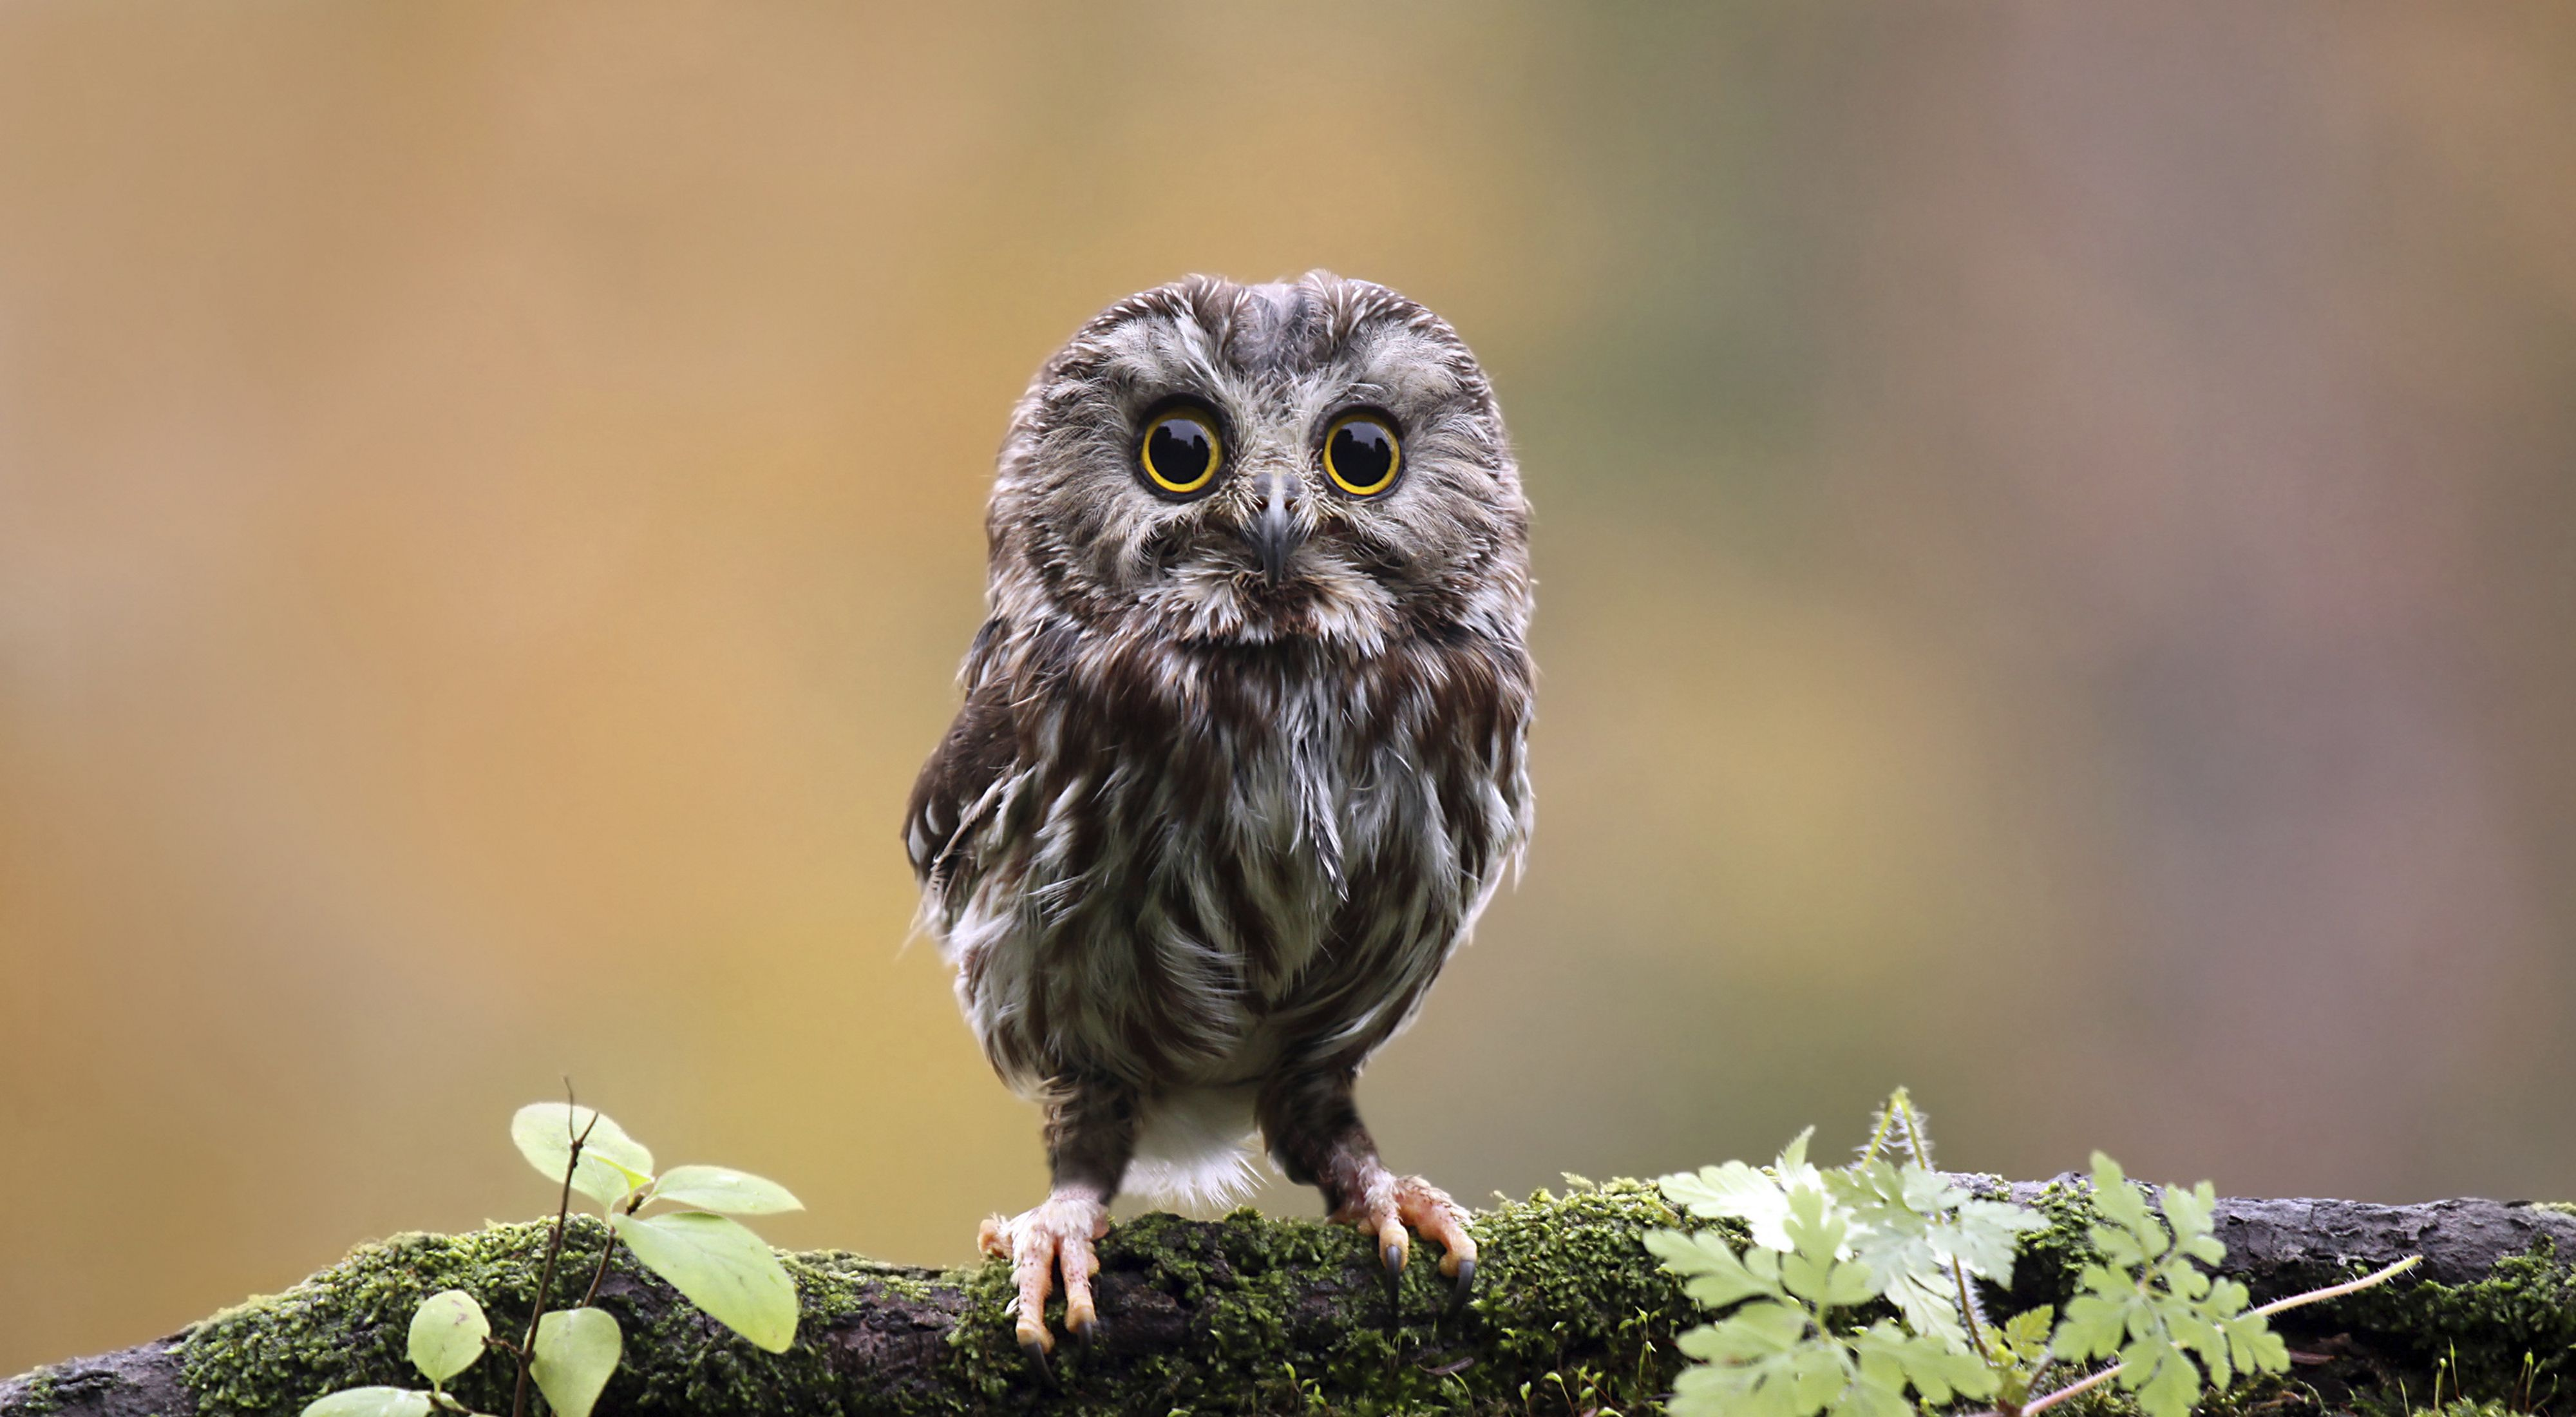 A small gray and brown owl perches on a moss covered tree branch.